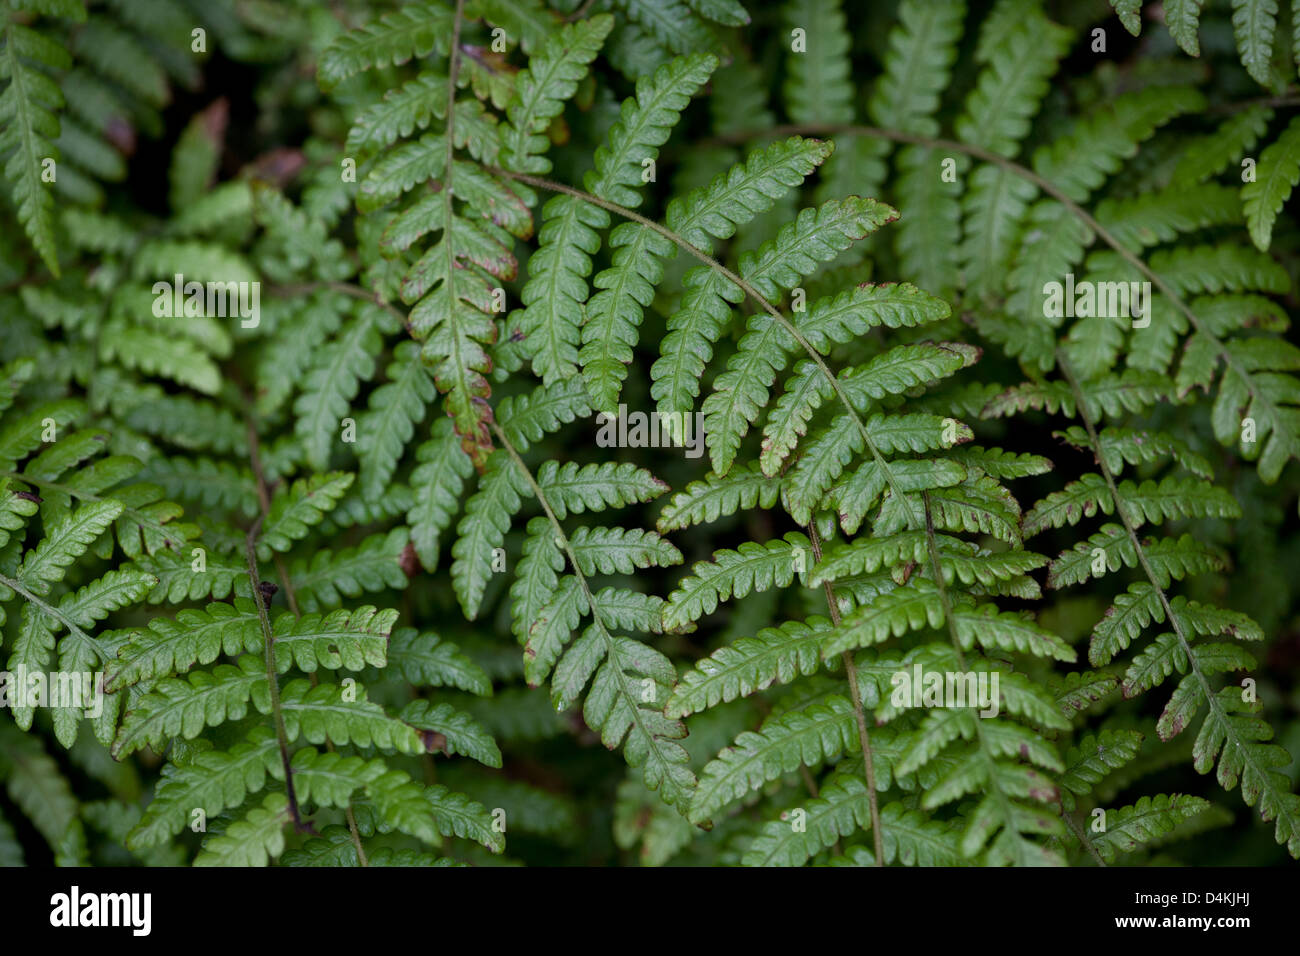 Beautiful ferns at the cloudforest floor in La Amistad national park, Panama province, Republic of Panama. Stock Photo